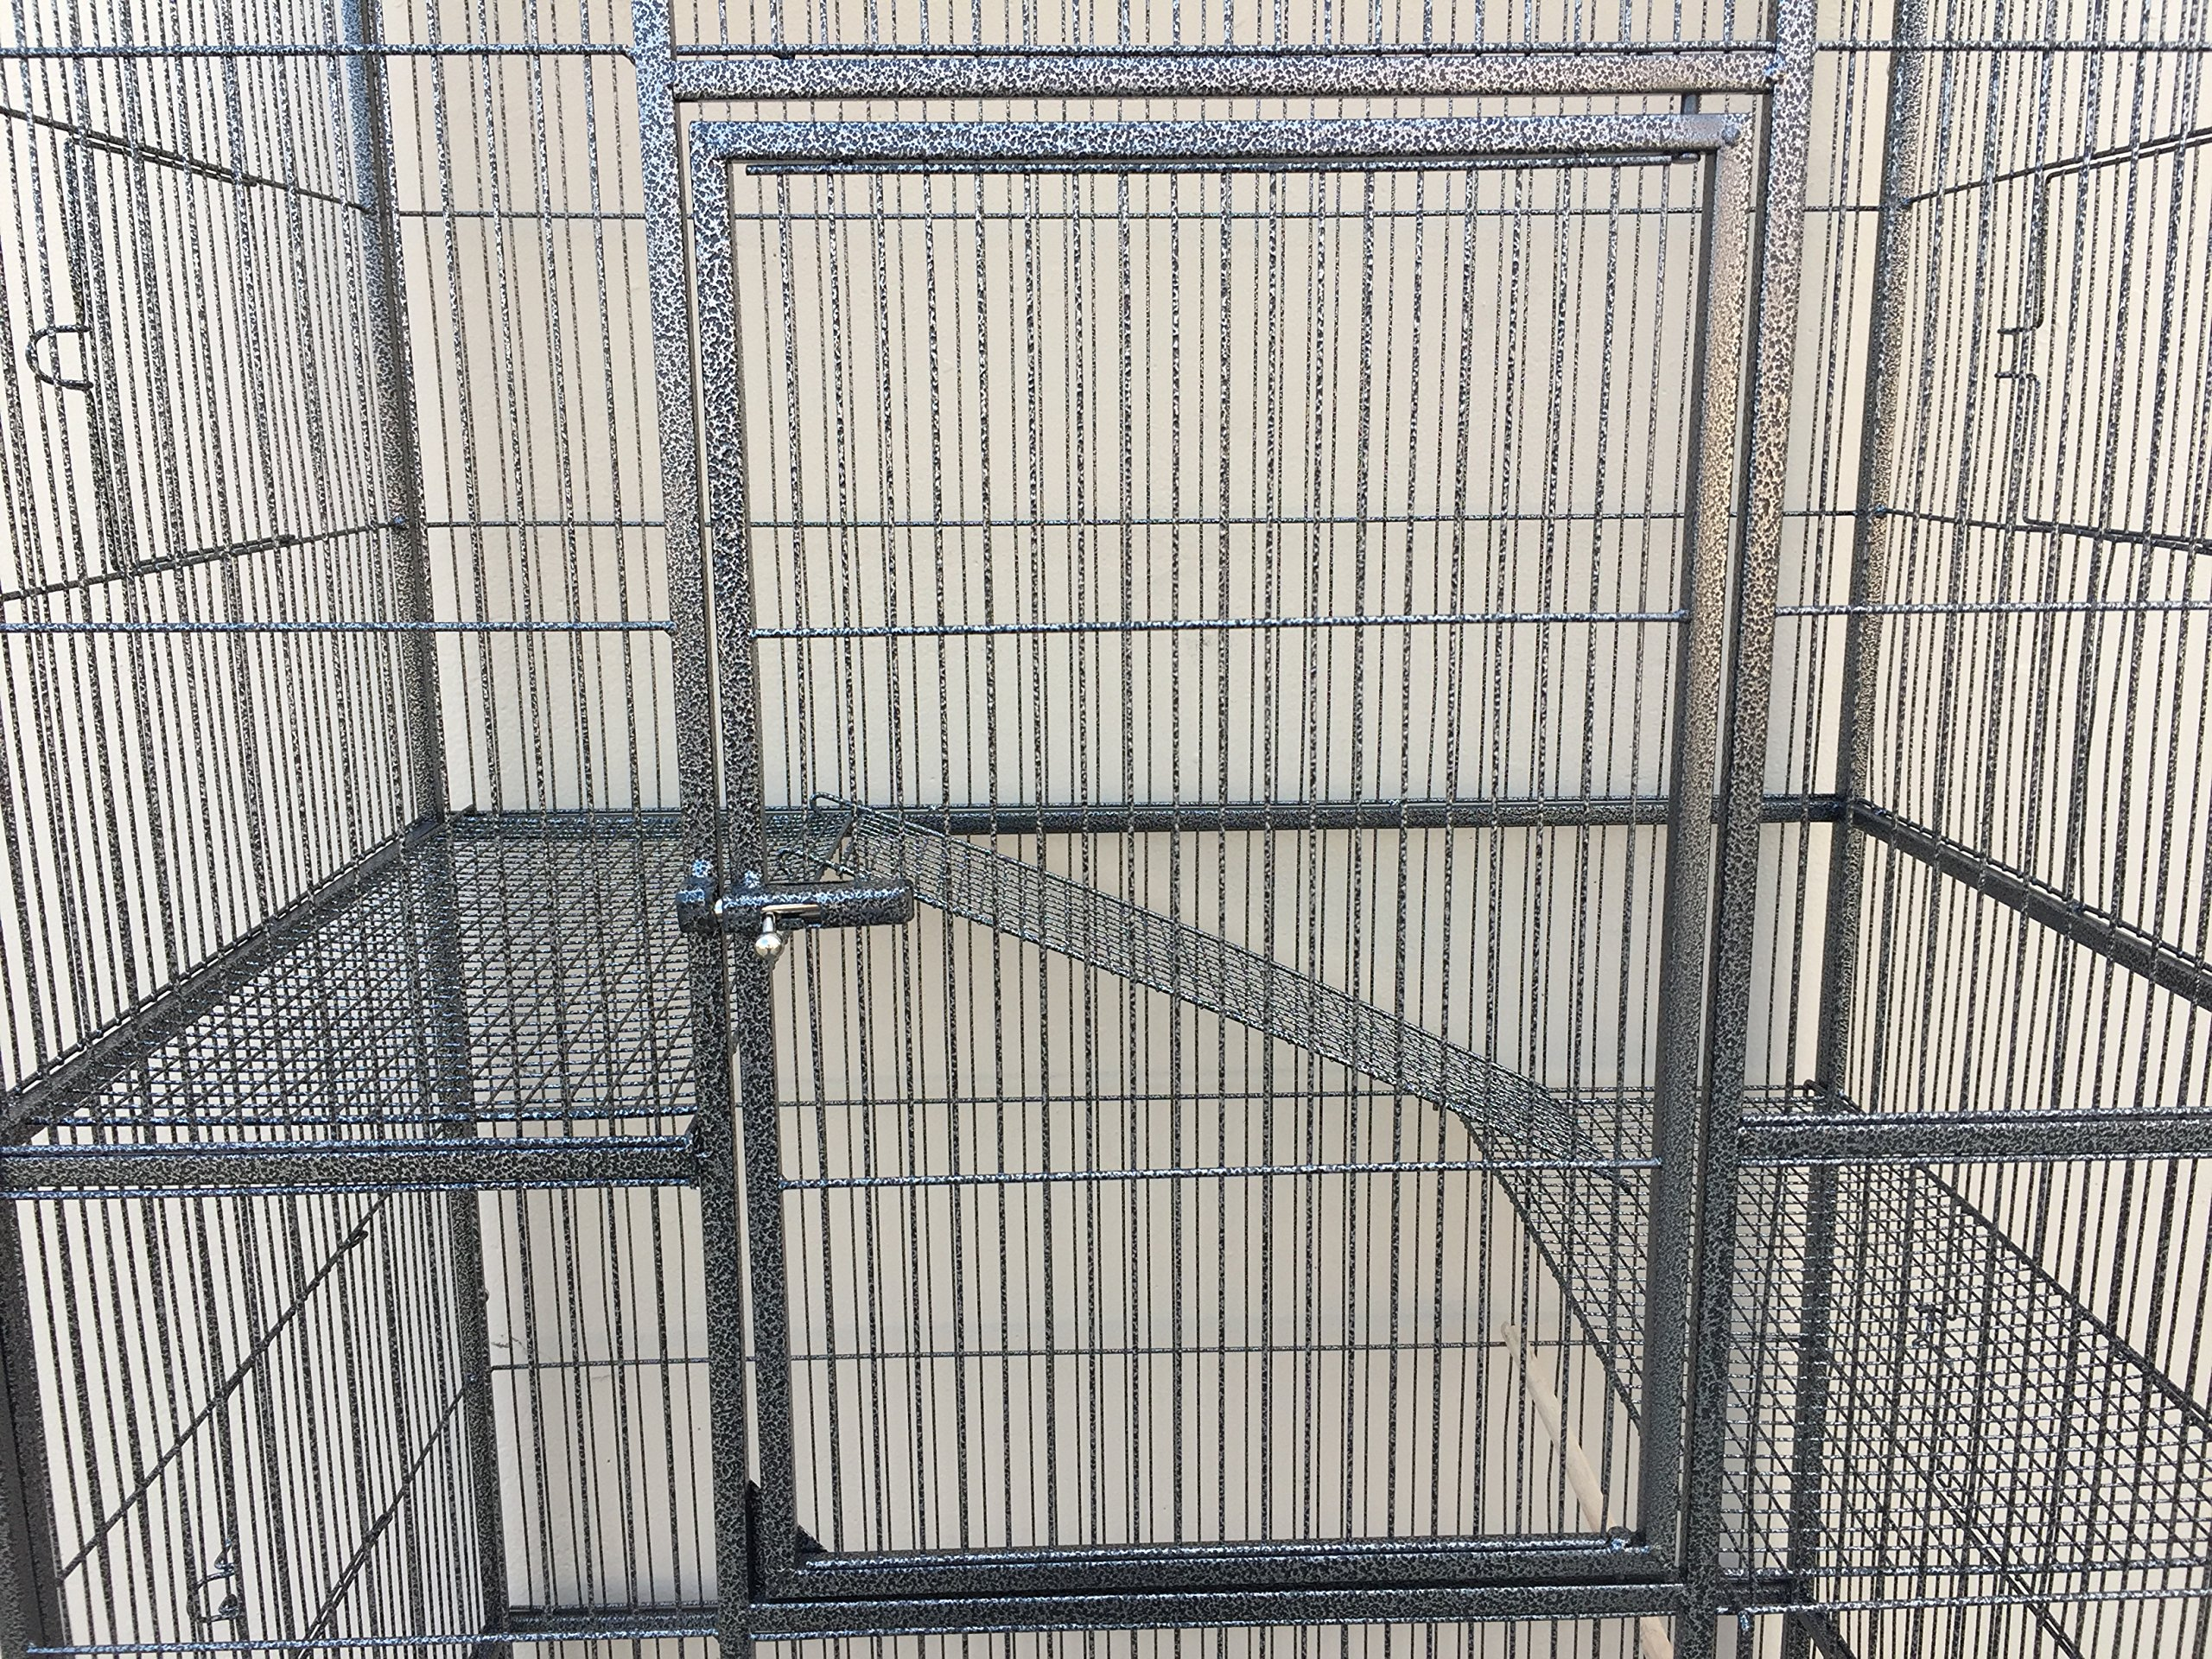 New Large Wrought Iron 4 Levels Ferret Chinchilla Sugar Glider Mice Rat Cage 32-Inch by 19-Inch by 64-Inch with Removable Stand by Mcage